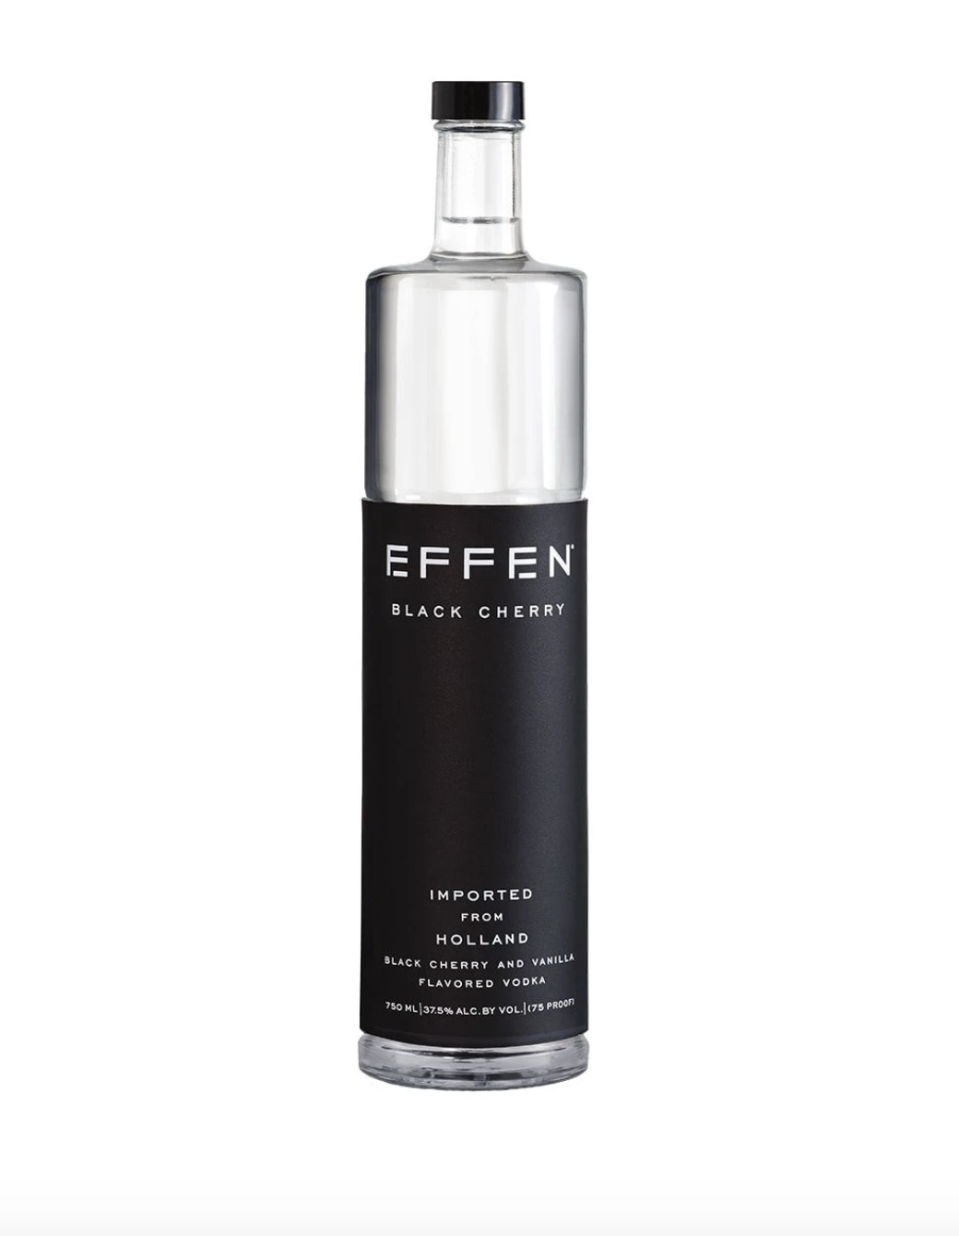 """<p><strong>EFFEN </strong></p><p>wine.com</p><p><strong>$19.49</strong></p><p><a href=""""https://go.redirectingat.com?id=74968X1596630&url=https%3A%2F%2Fwww.wine.com%2Fproduct%2Feffen-black-cherry-vodka%2F530530&sref=https%3A%2F%2Fwww.cosmopolitan.com%2Flifestyle%2Fg33366201%2Fbest-cheap-liquor%2F"""" rel=""""nofollow noopener"""" target=""""_blank"""" data-ylk=""""slk:Shop Now"""" class=""""link rapid-noclick-resp"""">Shop Now</a></p><p>No matter how much money you spend, taking shots is always tough. The subtle black cherry and vanilla notes in this vodka make the strong taste easier to swallow.</p>"""